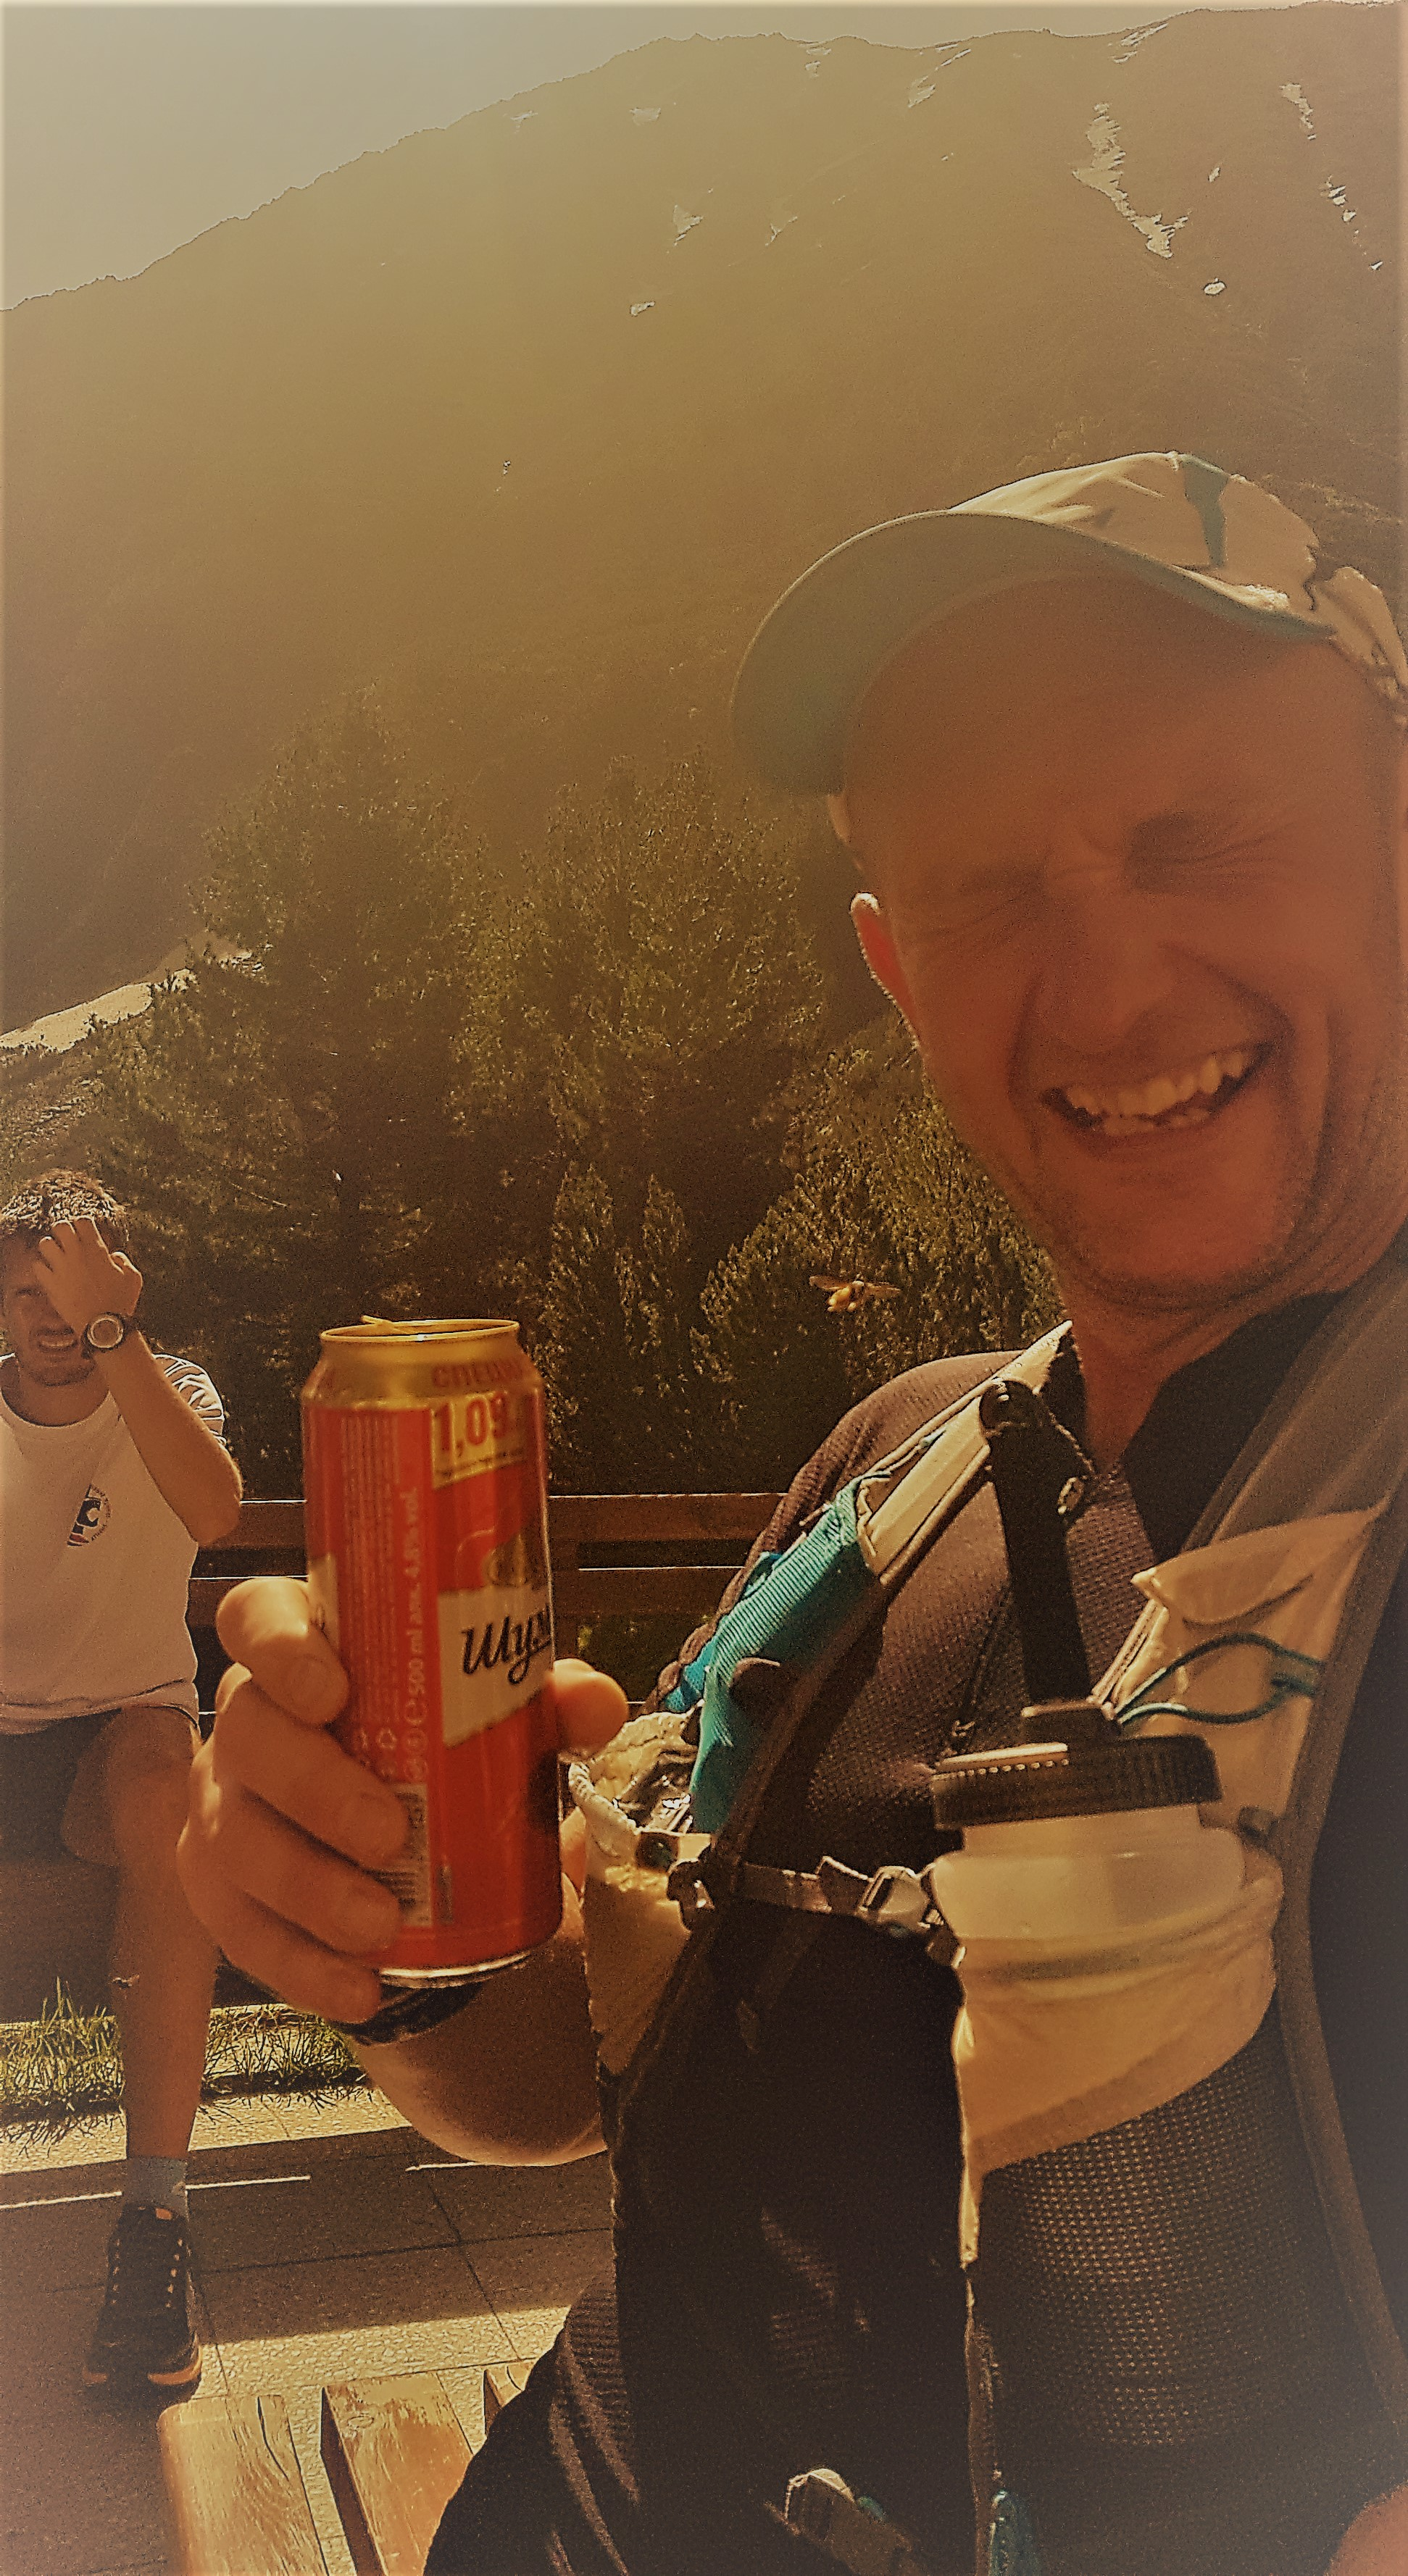 - If you have climbed 15 miles and are preparing a 15 mile downward descent then you can absolutely celebrate aka Carl the Legend